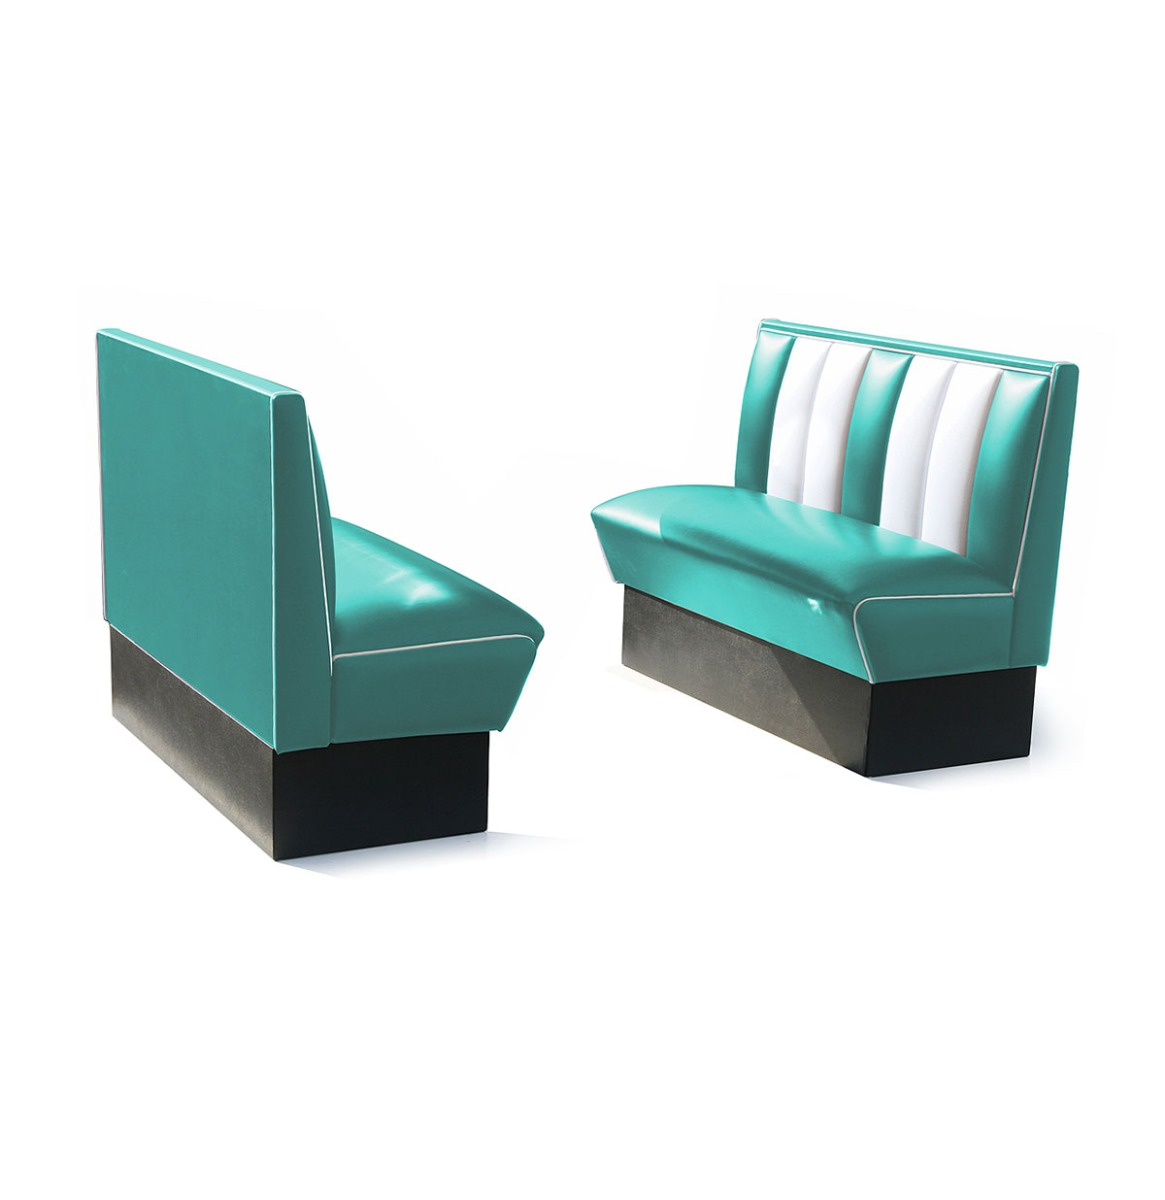 Classic Retro Diner Bank Bel Air HW120 Turquoise